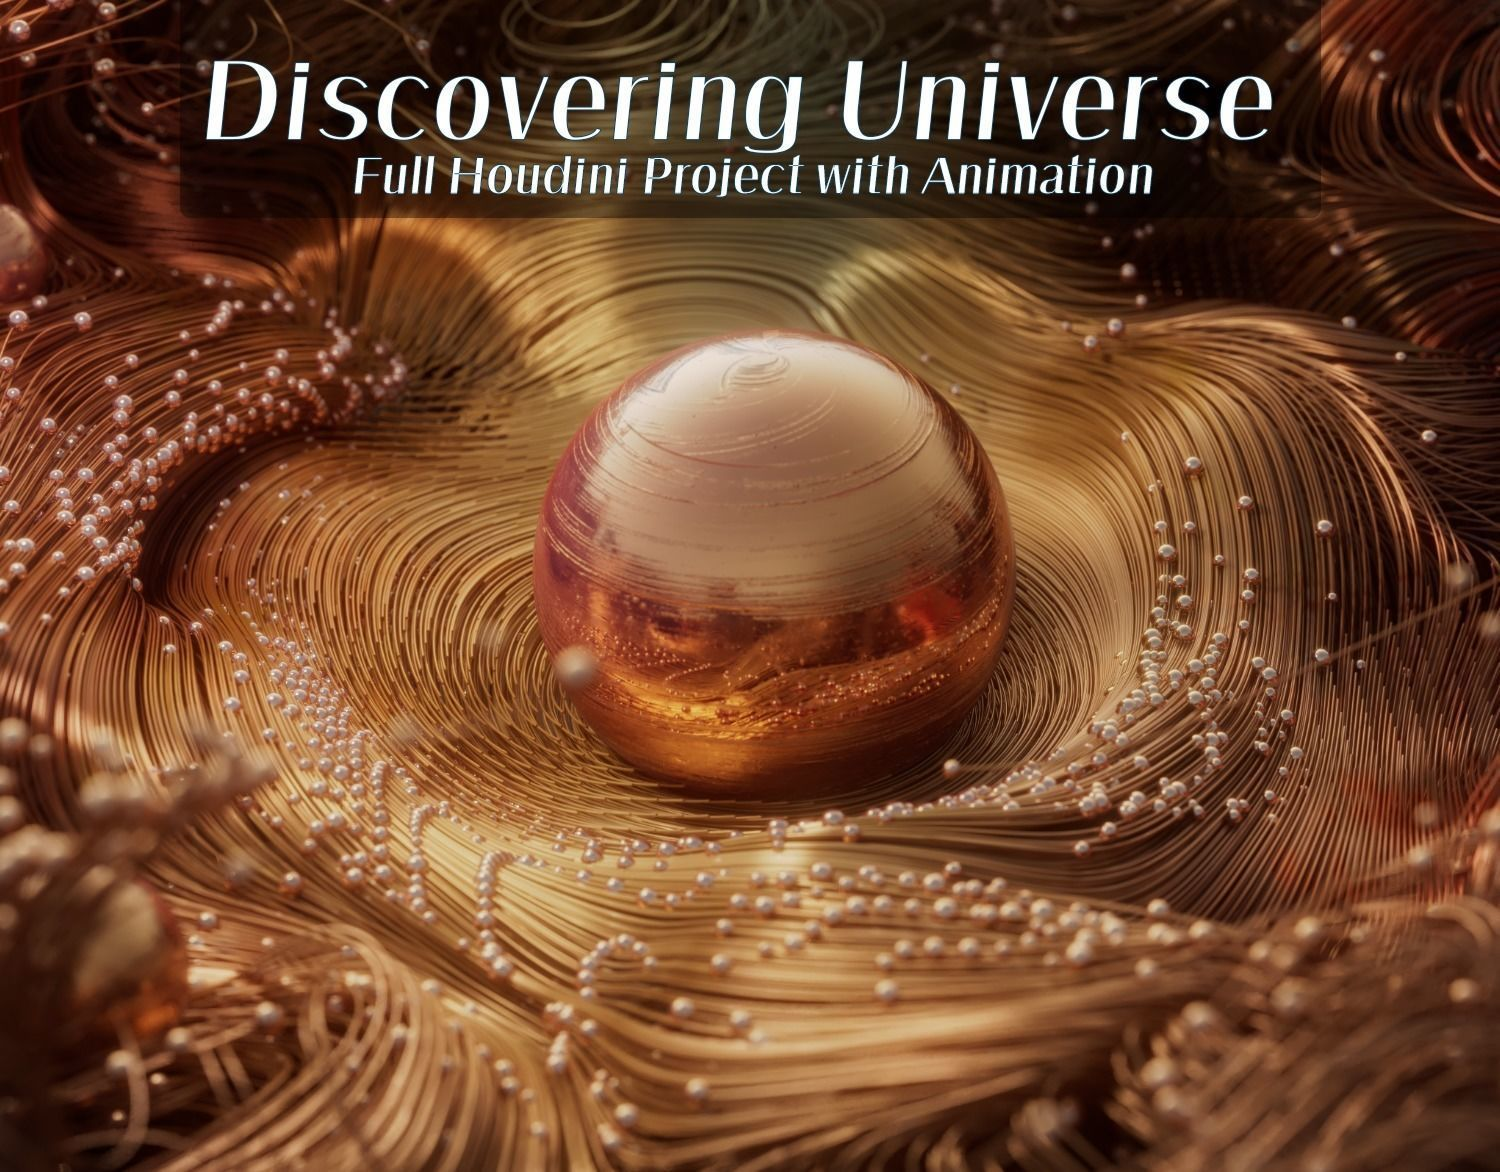 Discovering New Universe